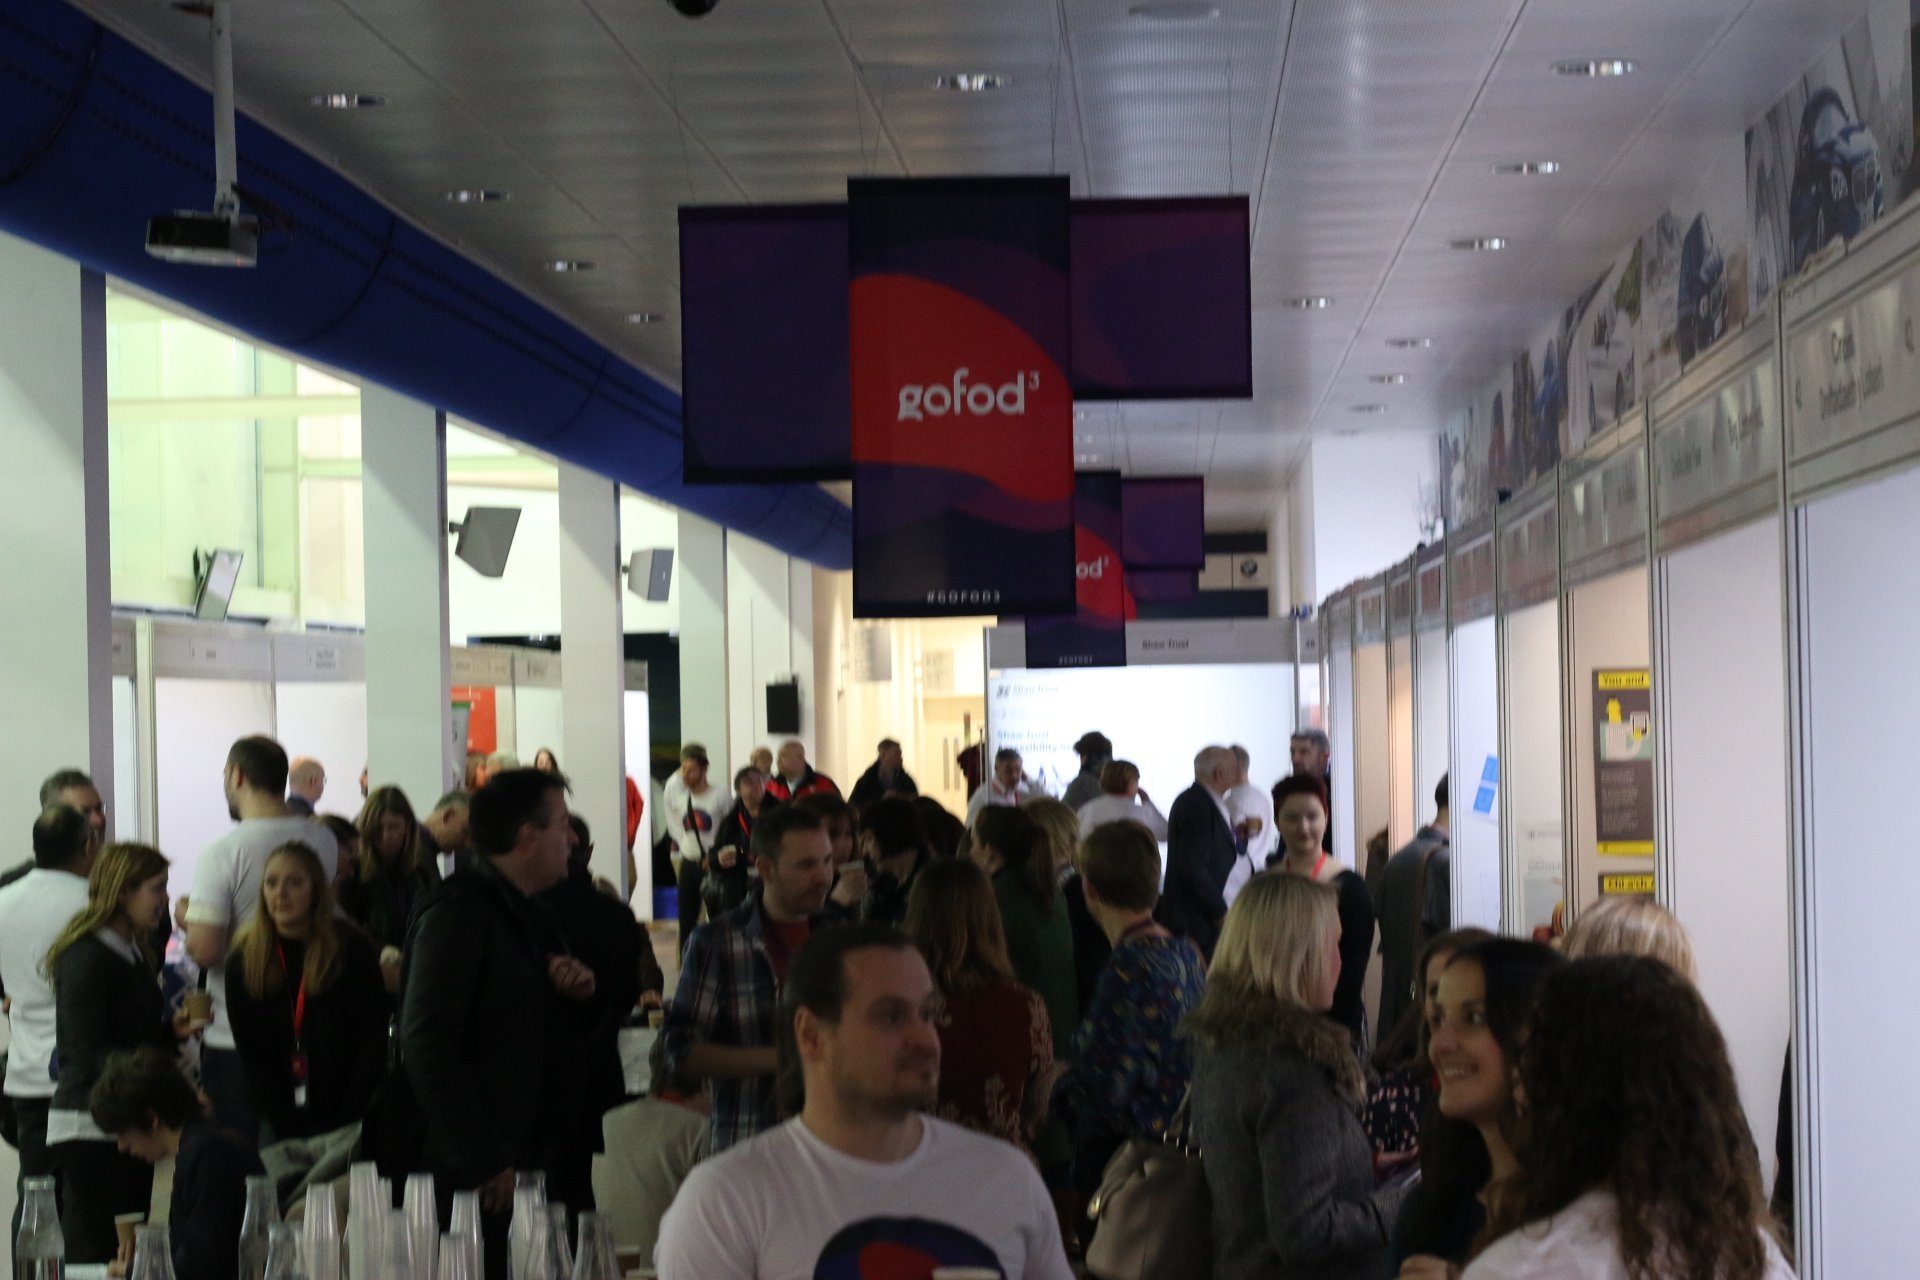 First sessions about to start. Exhibitors section is busy! #gofod3 https://t.co/L2Qt3x4hai